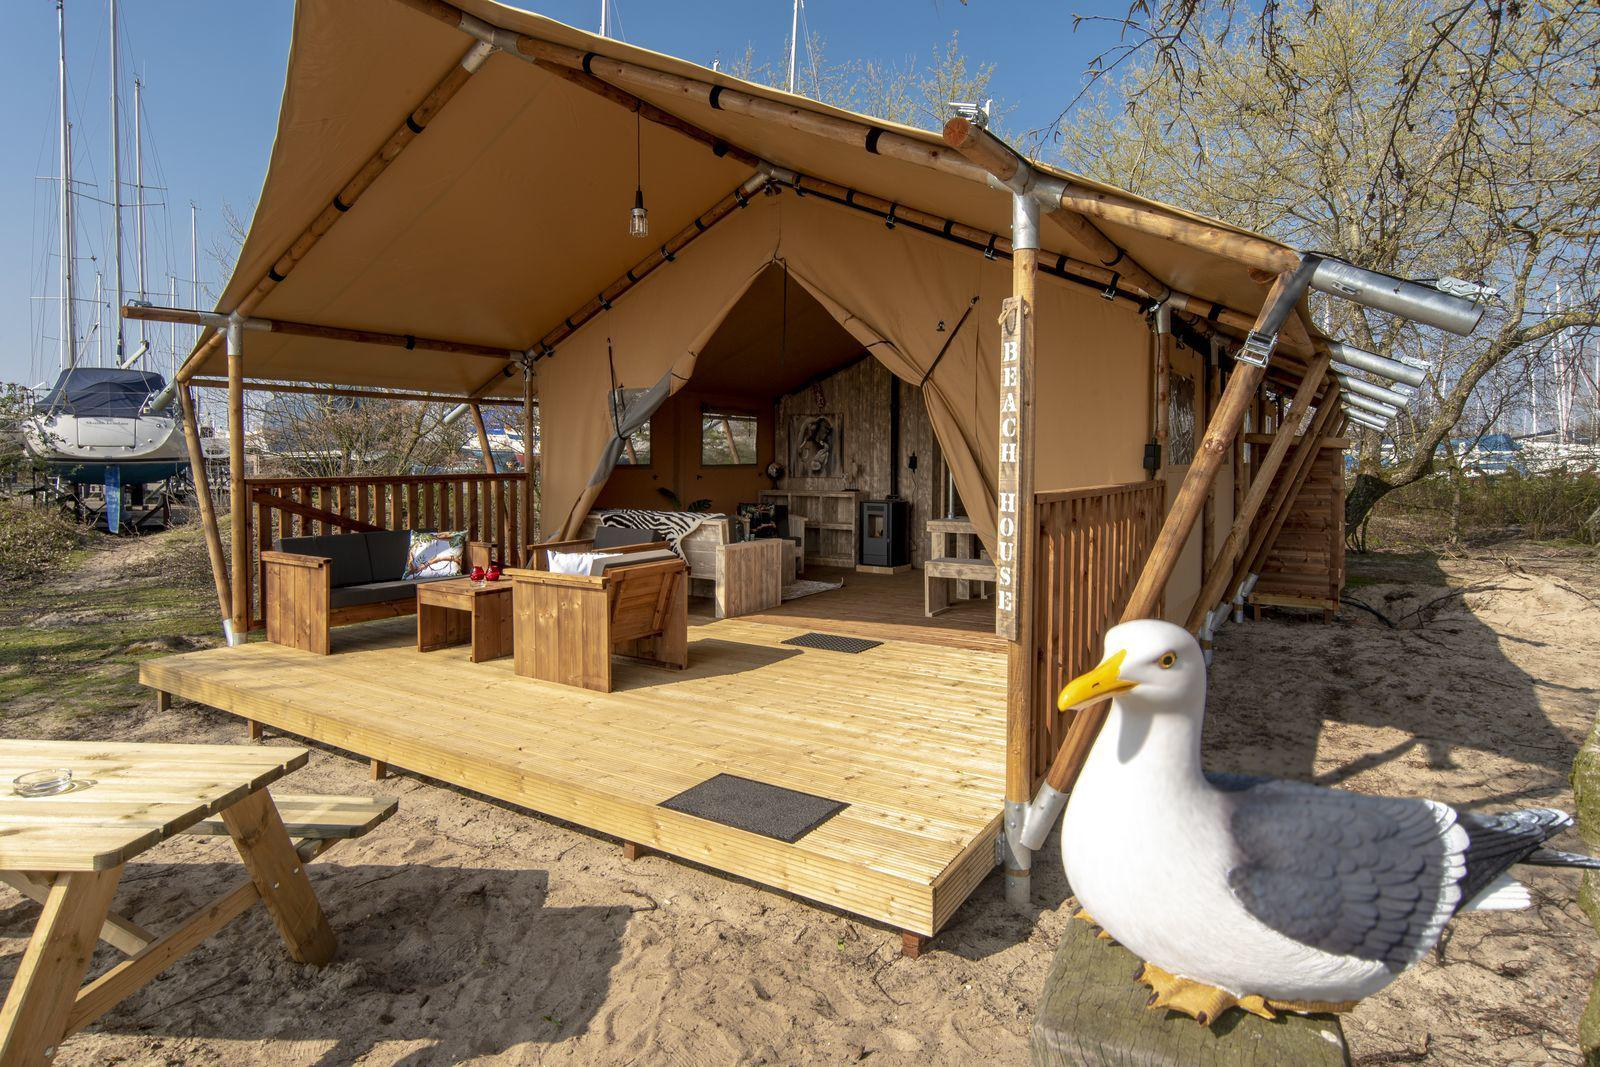 Safarilodge XL 6 persoons